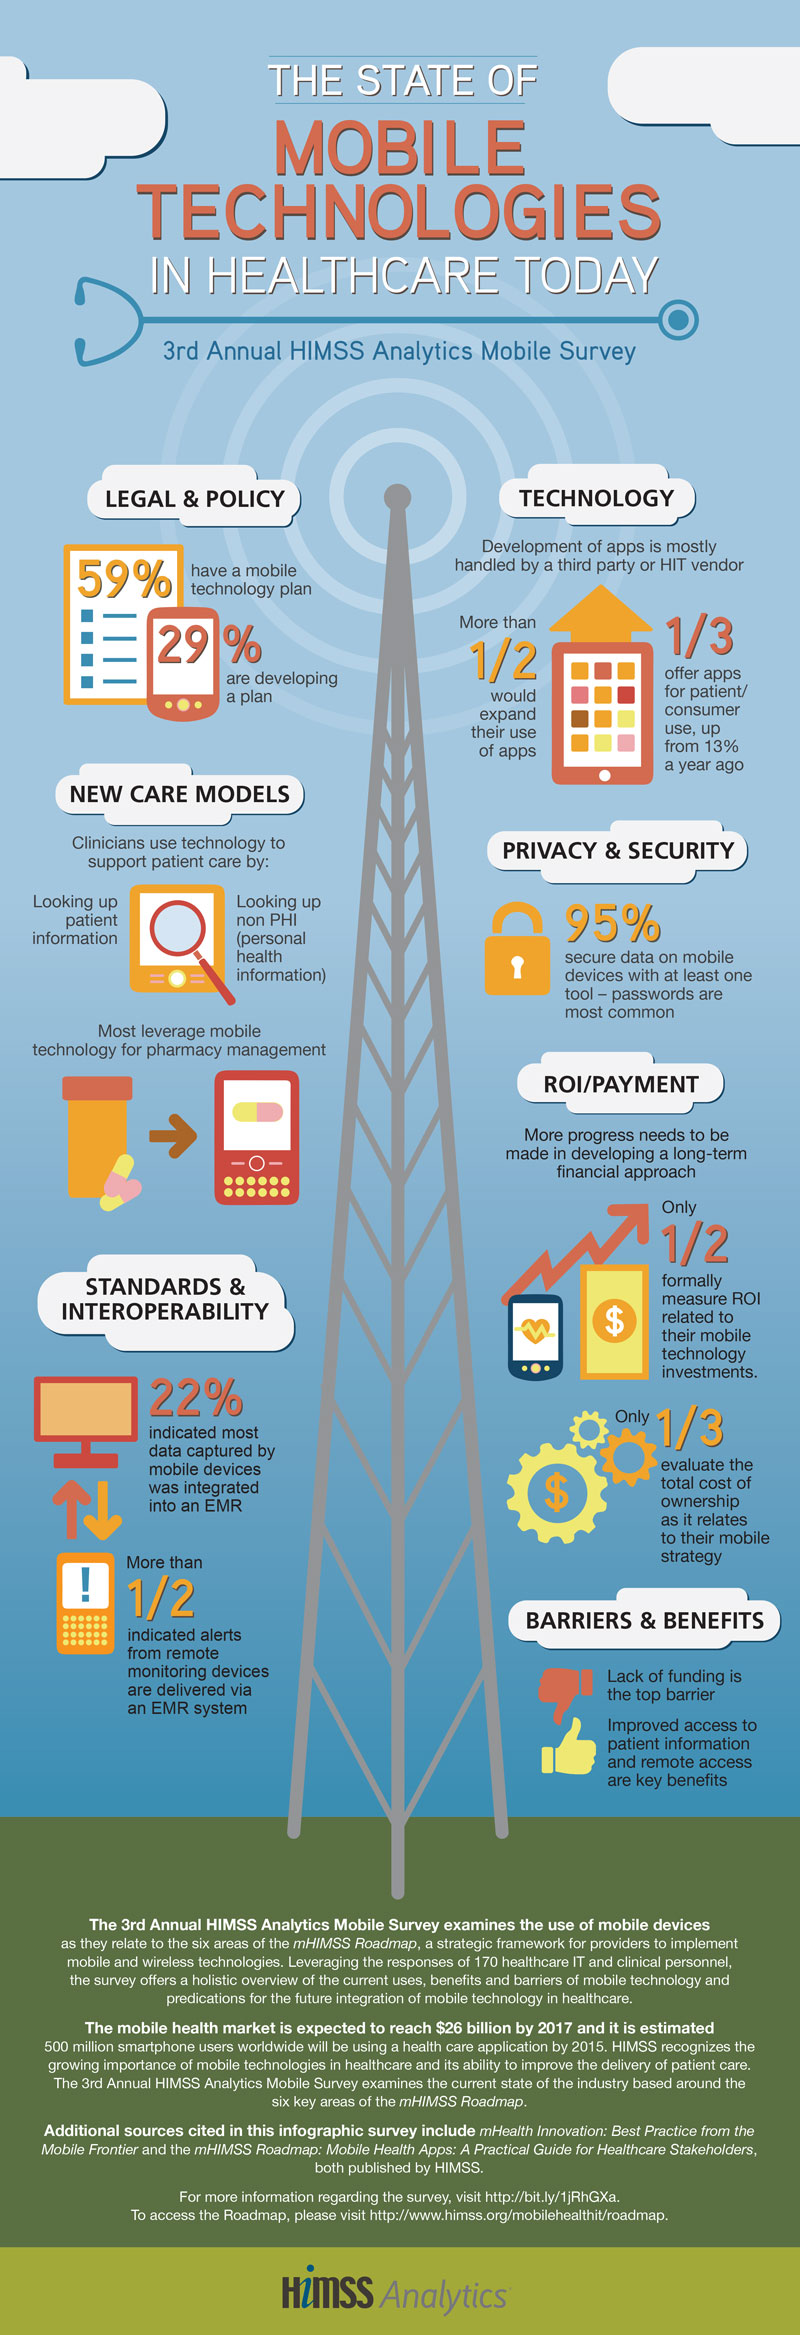 Older Adults and Technology Use